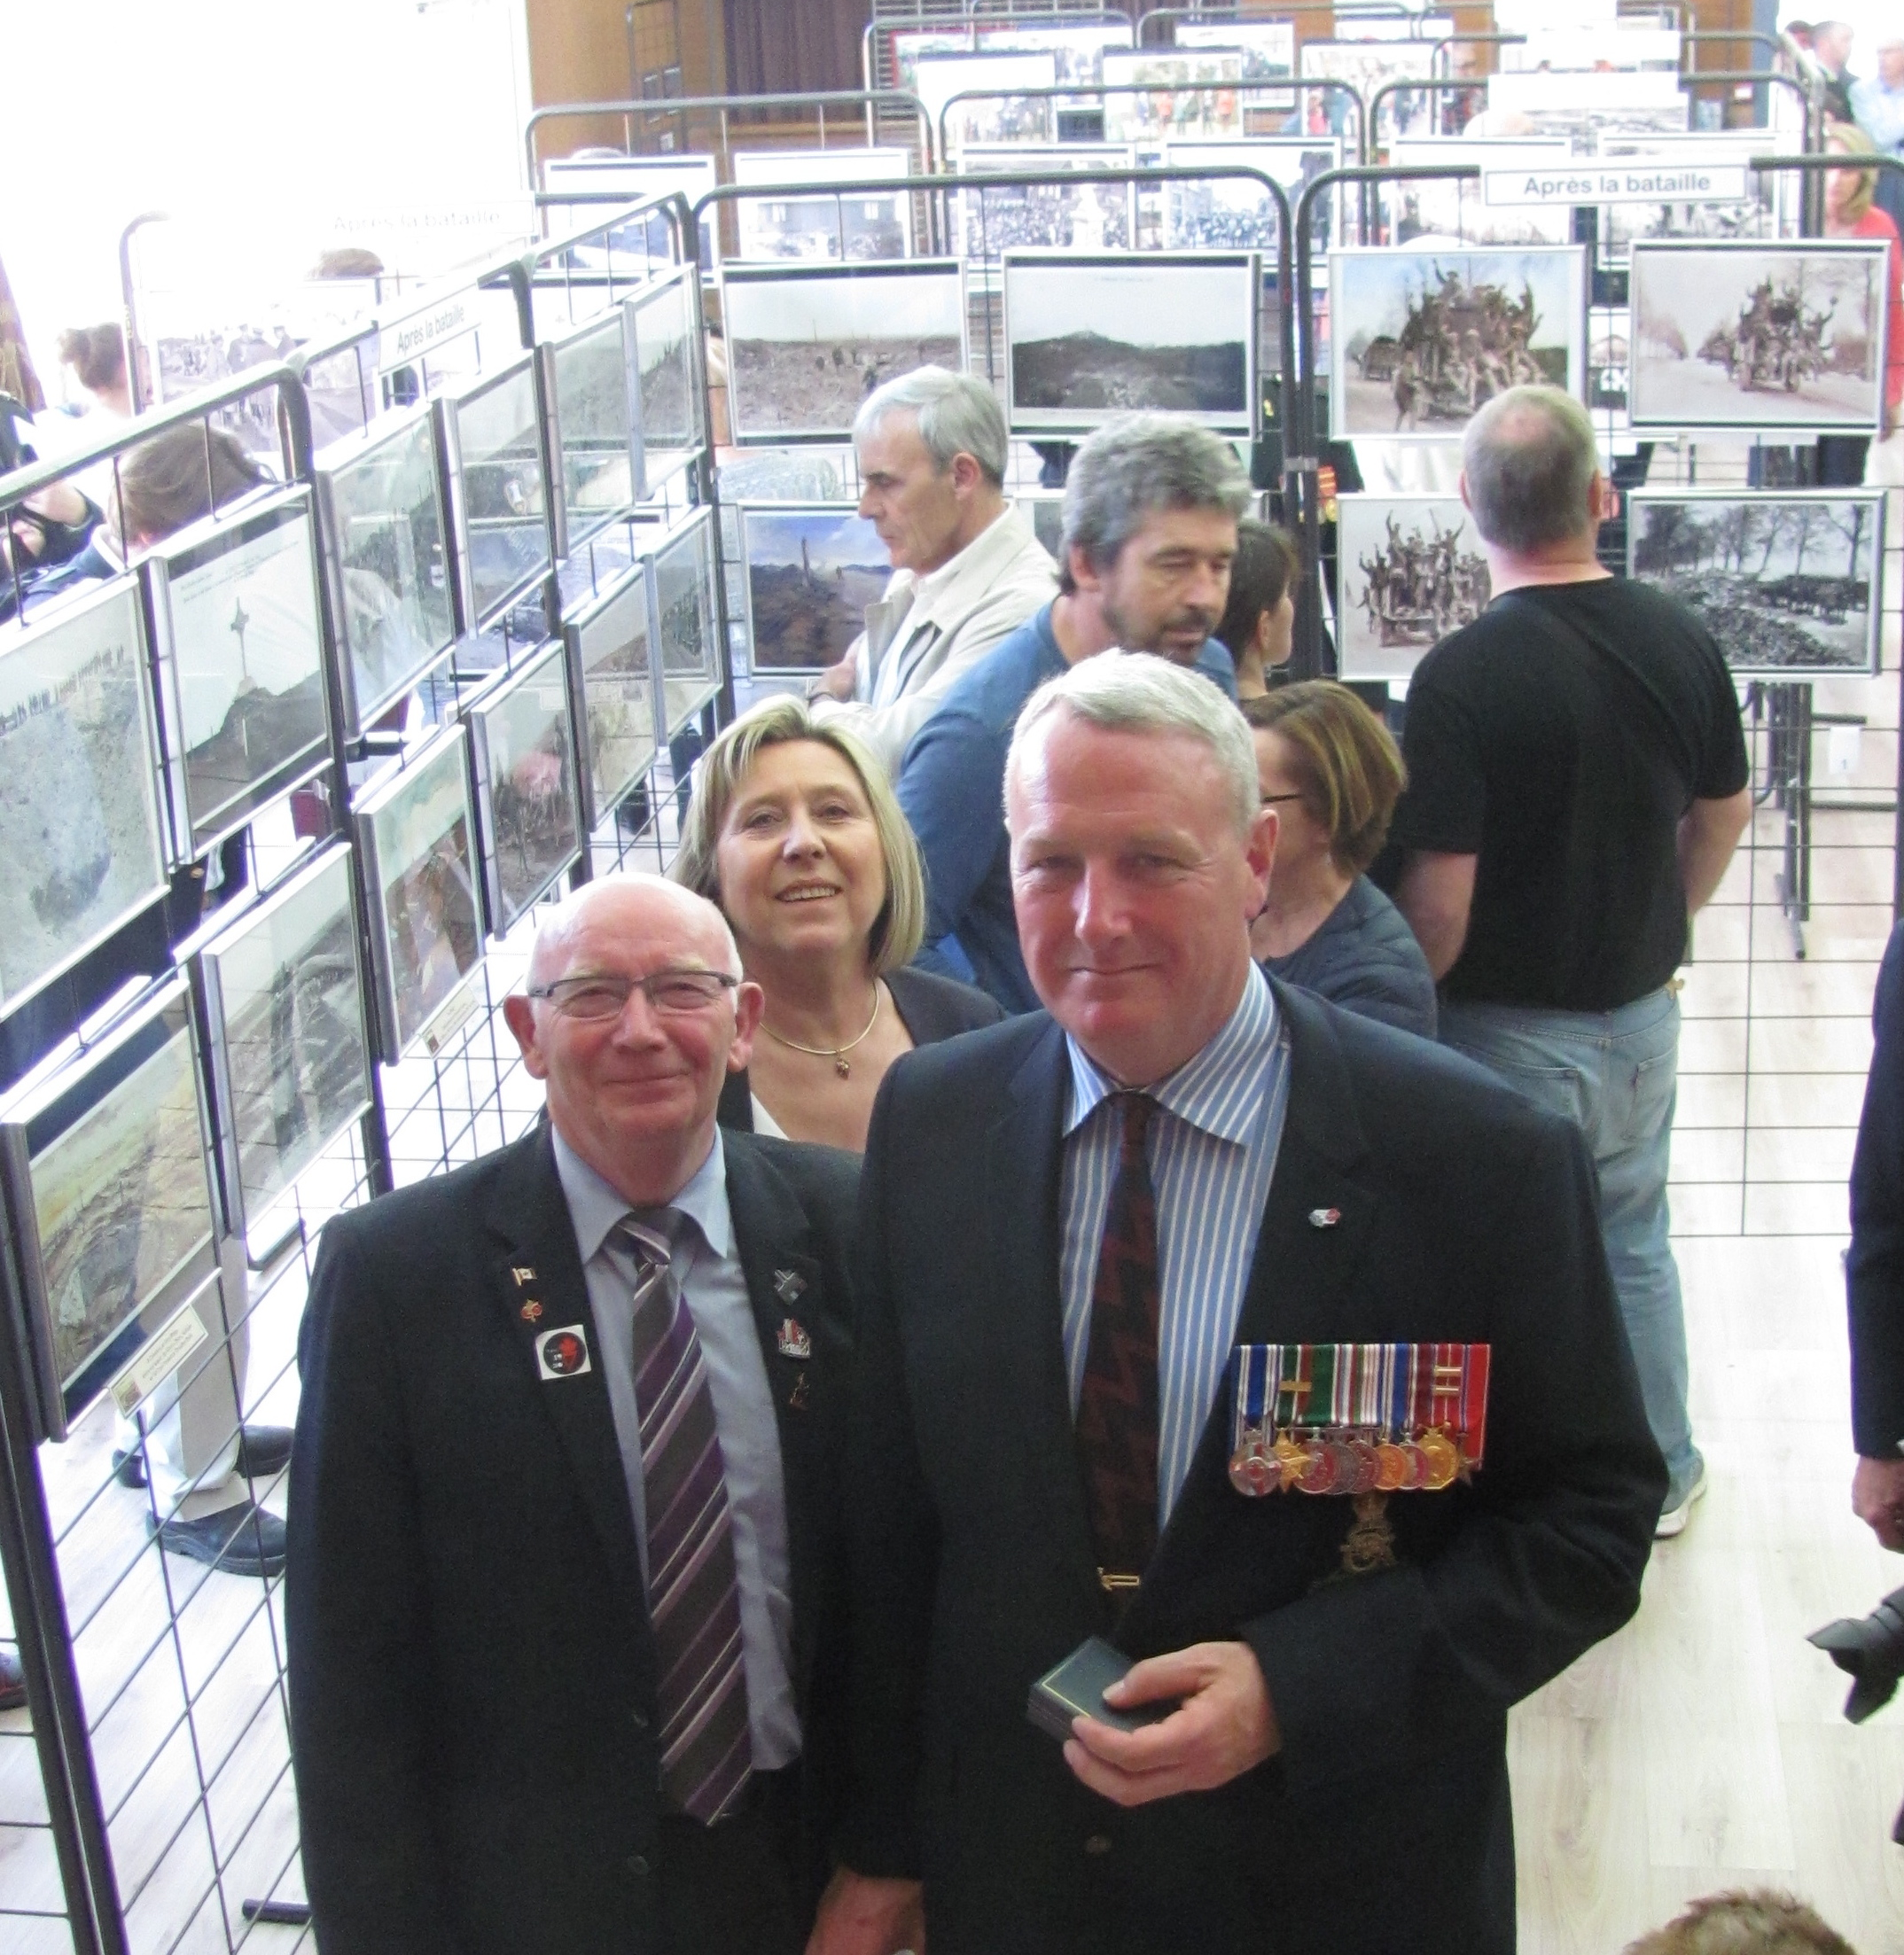 Mayor Bernard Milleville and David at the photo exhibit - some extraordinary images I have never seen before from family photo collections and town archive.